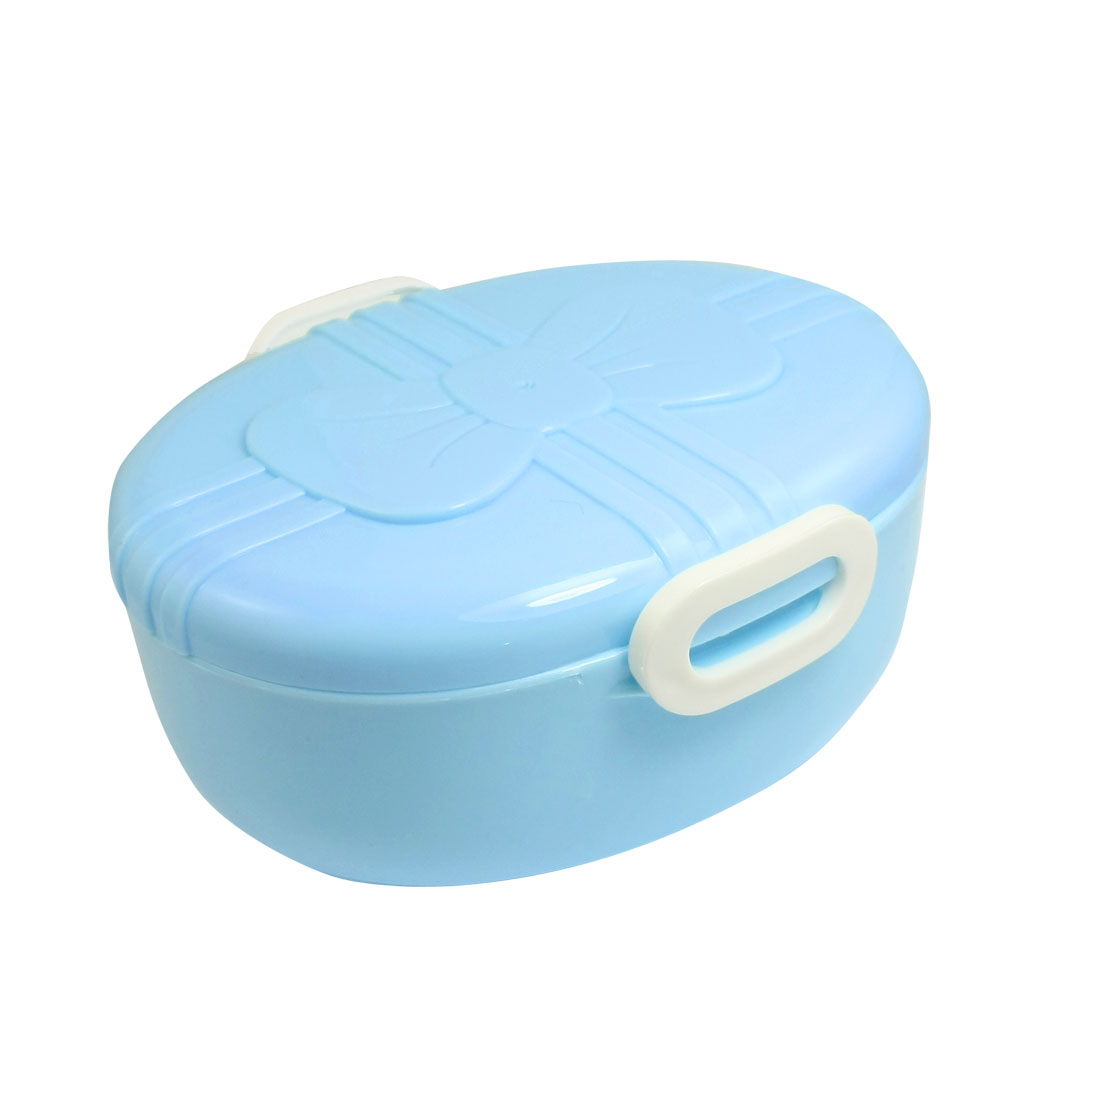 Bow Tie Pattern Baby Blue Plastic Lunch Box Food Storage Container w Spoon